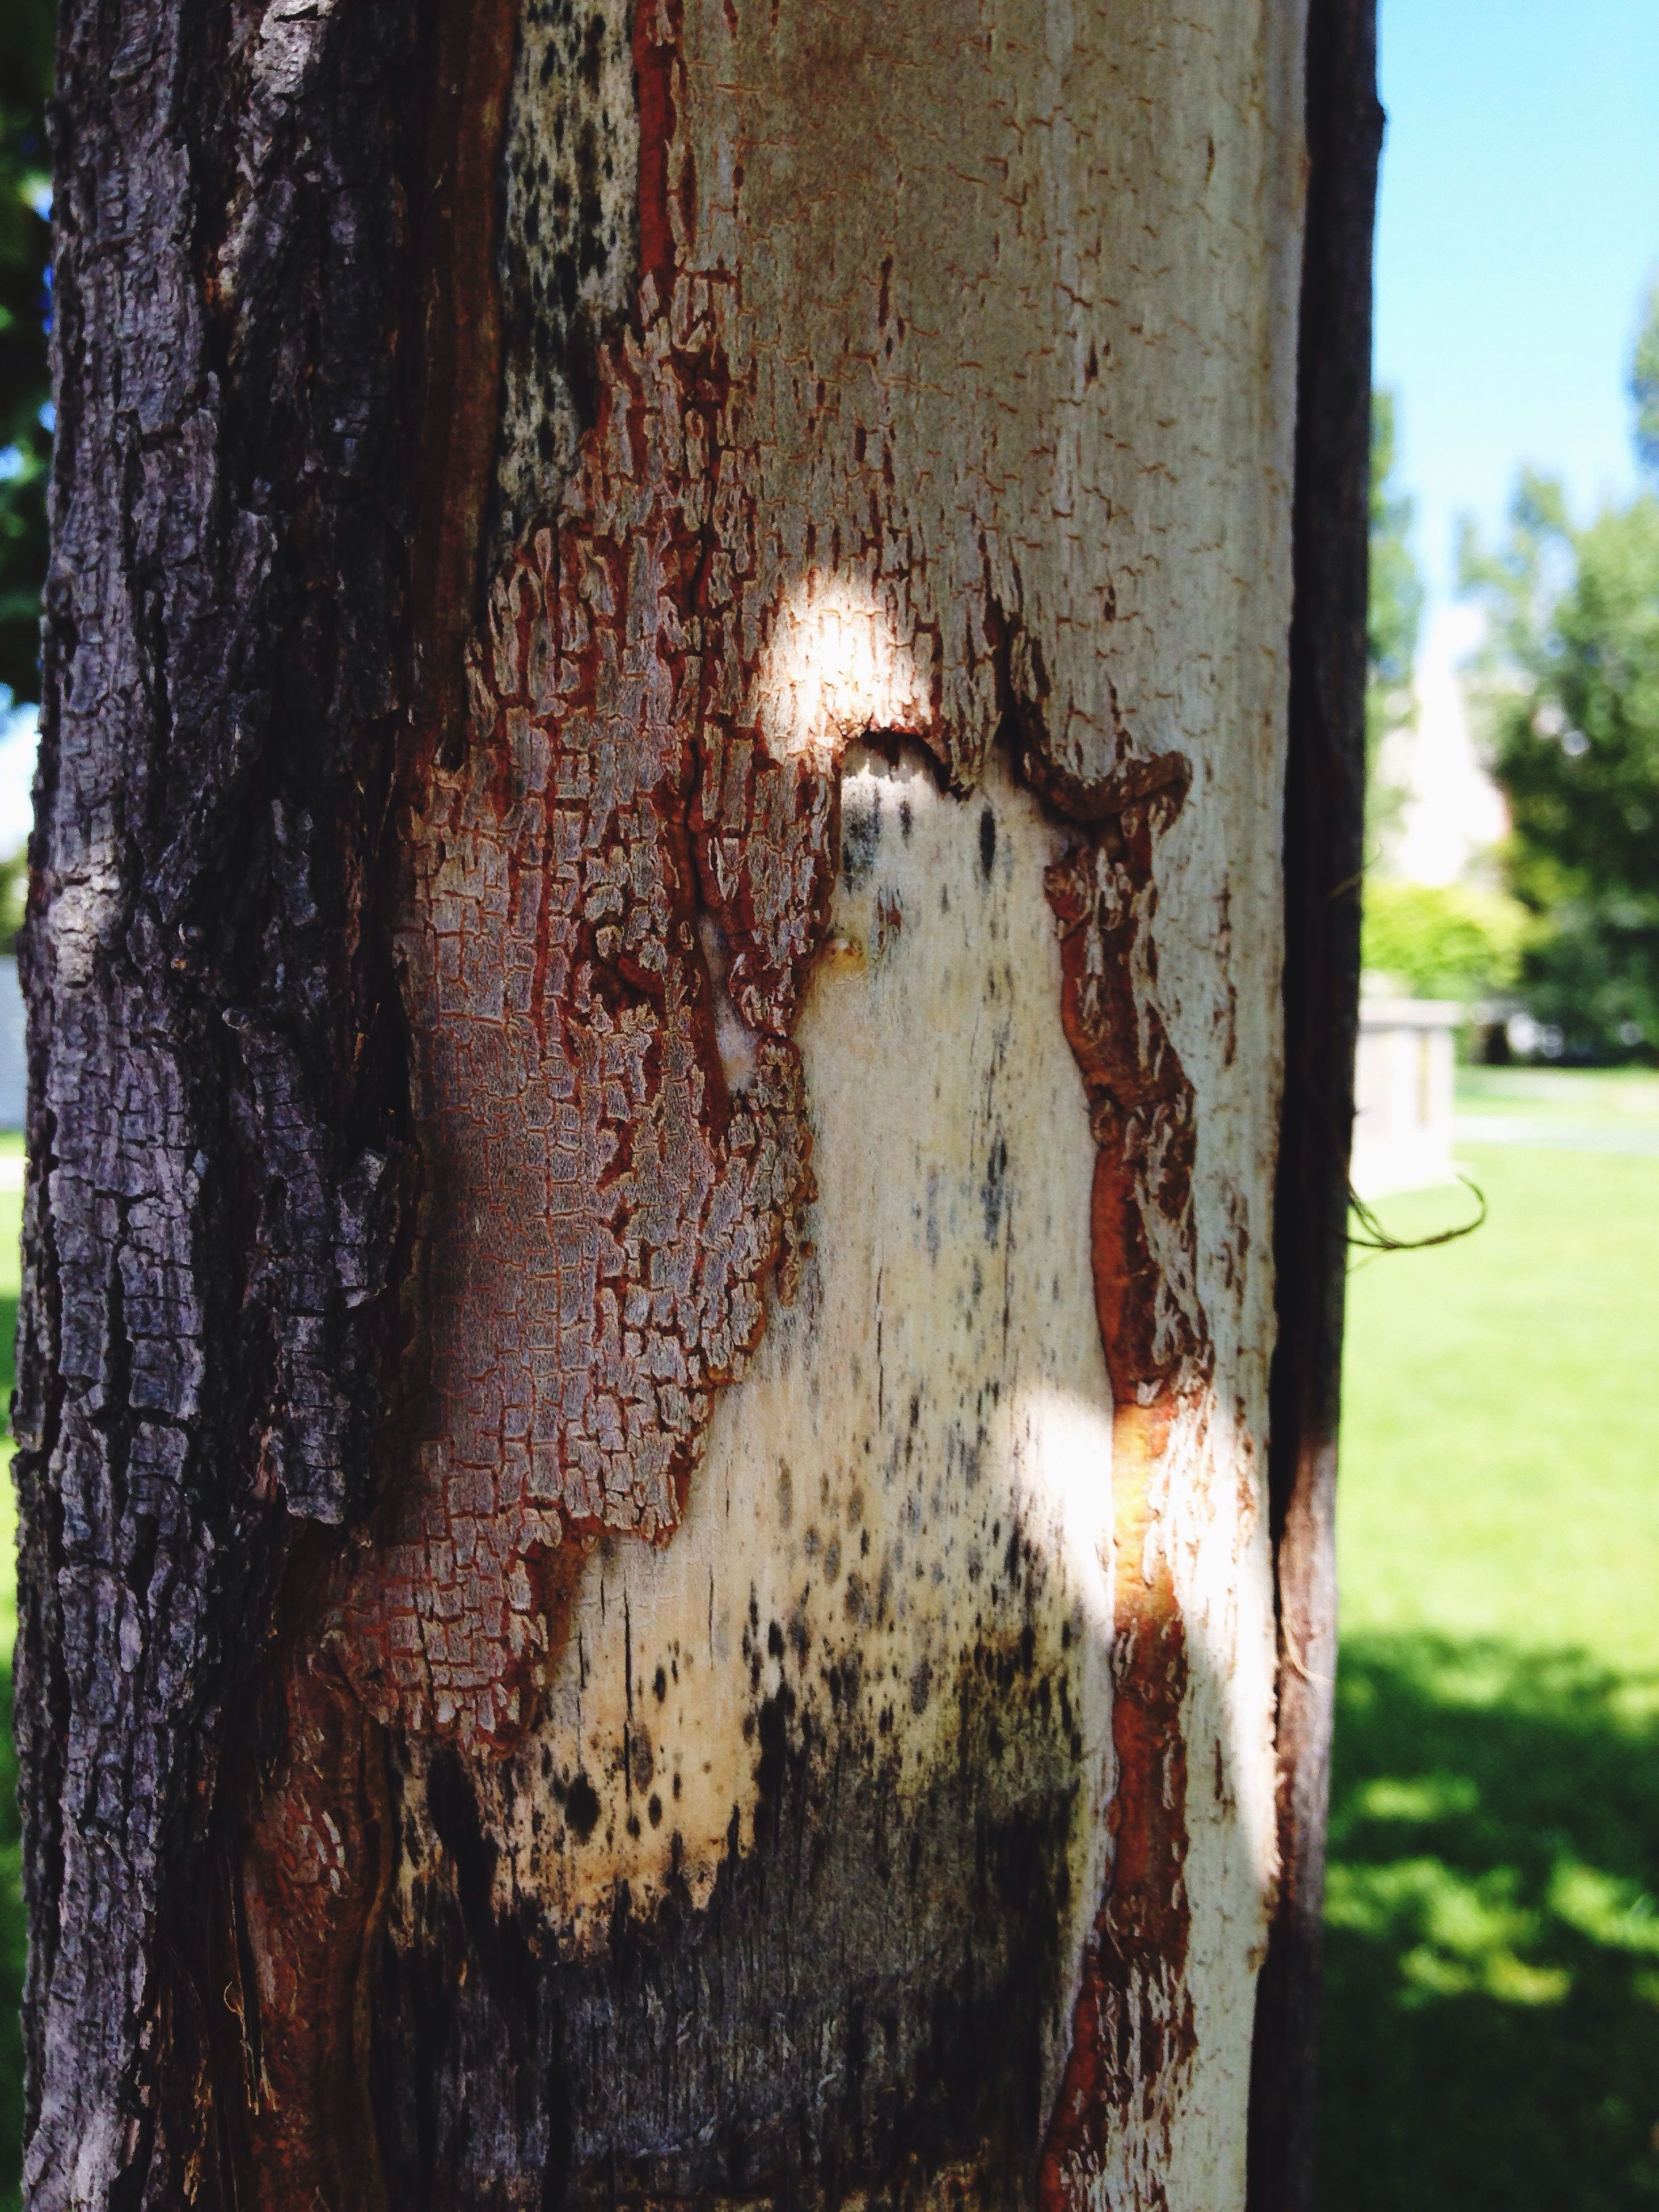 tree trunk, textured, close-up, tree, bark, rough, weathered, focus on foreground, growth, peeling off, nature, day, plant bark, no people, tranquility